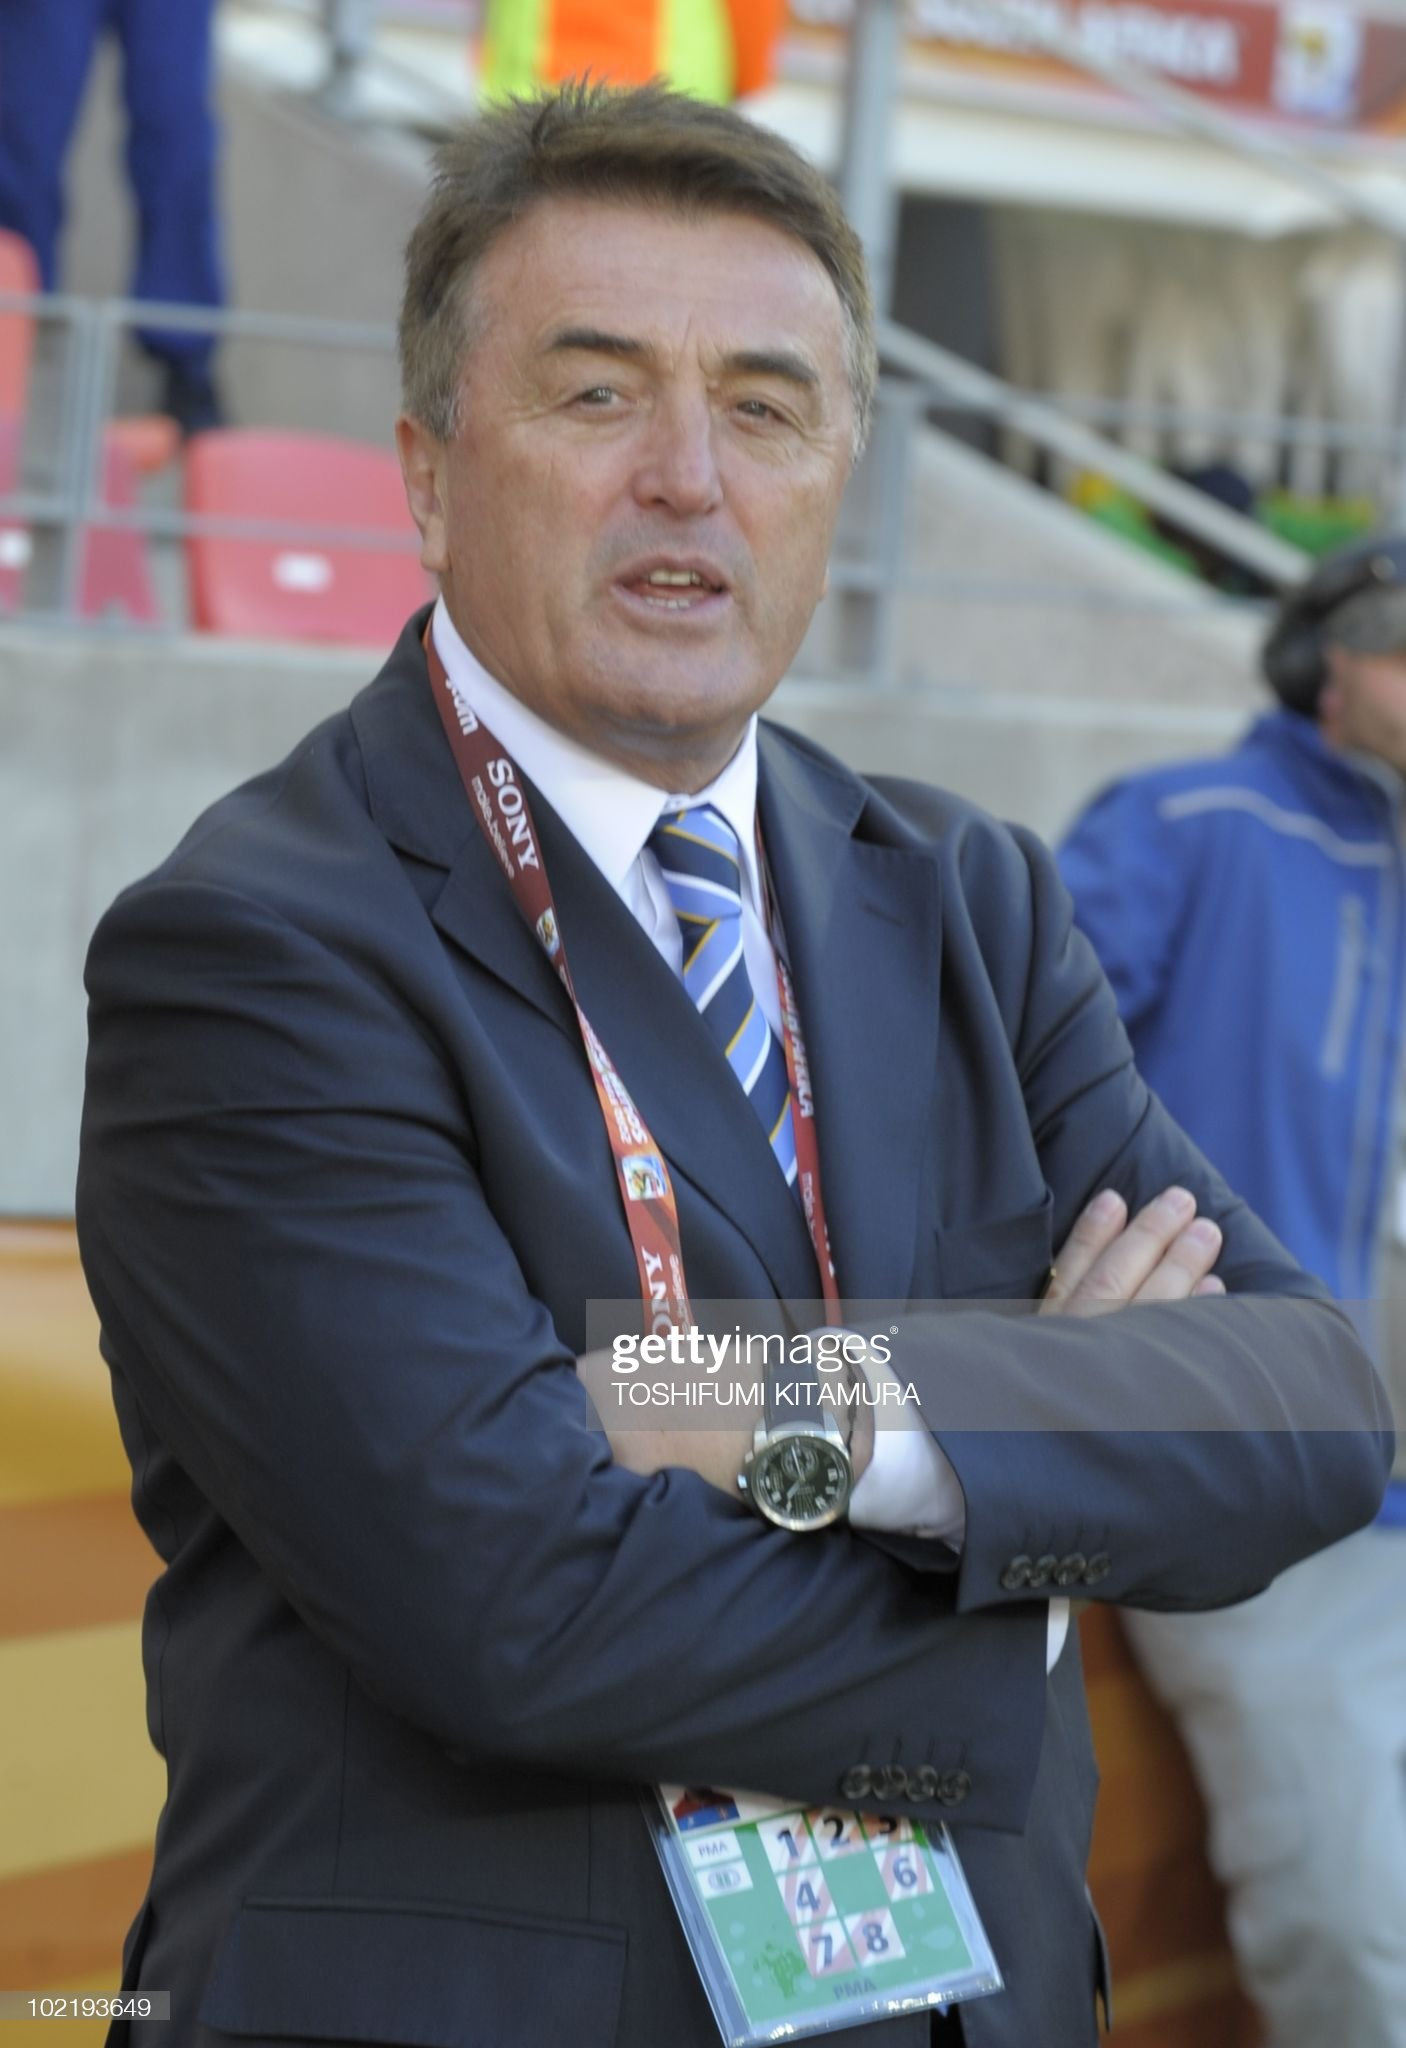 ¿Cuánto mide Radomir Antic? - Altura - Real height Serbias-coach-radomir-antic-attends-the-2010-world-cup-group-d-first-picture-id102193649?s=2048x2048